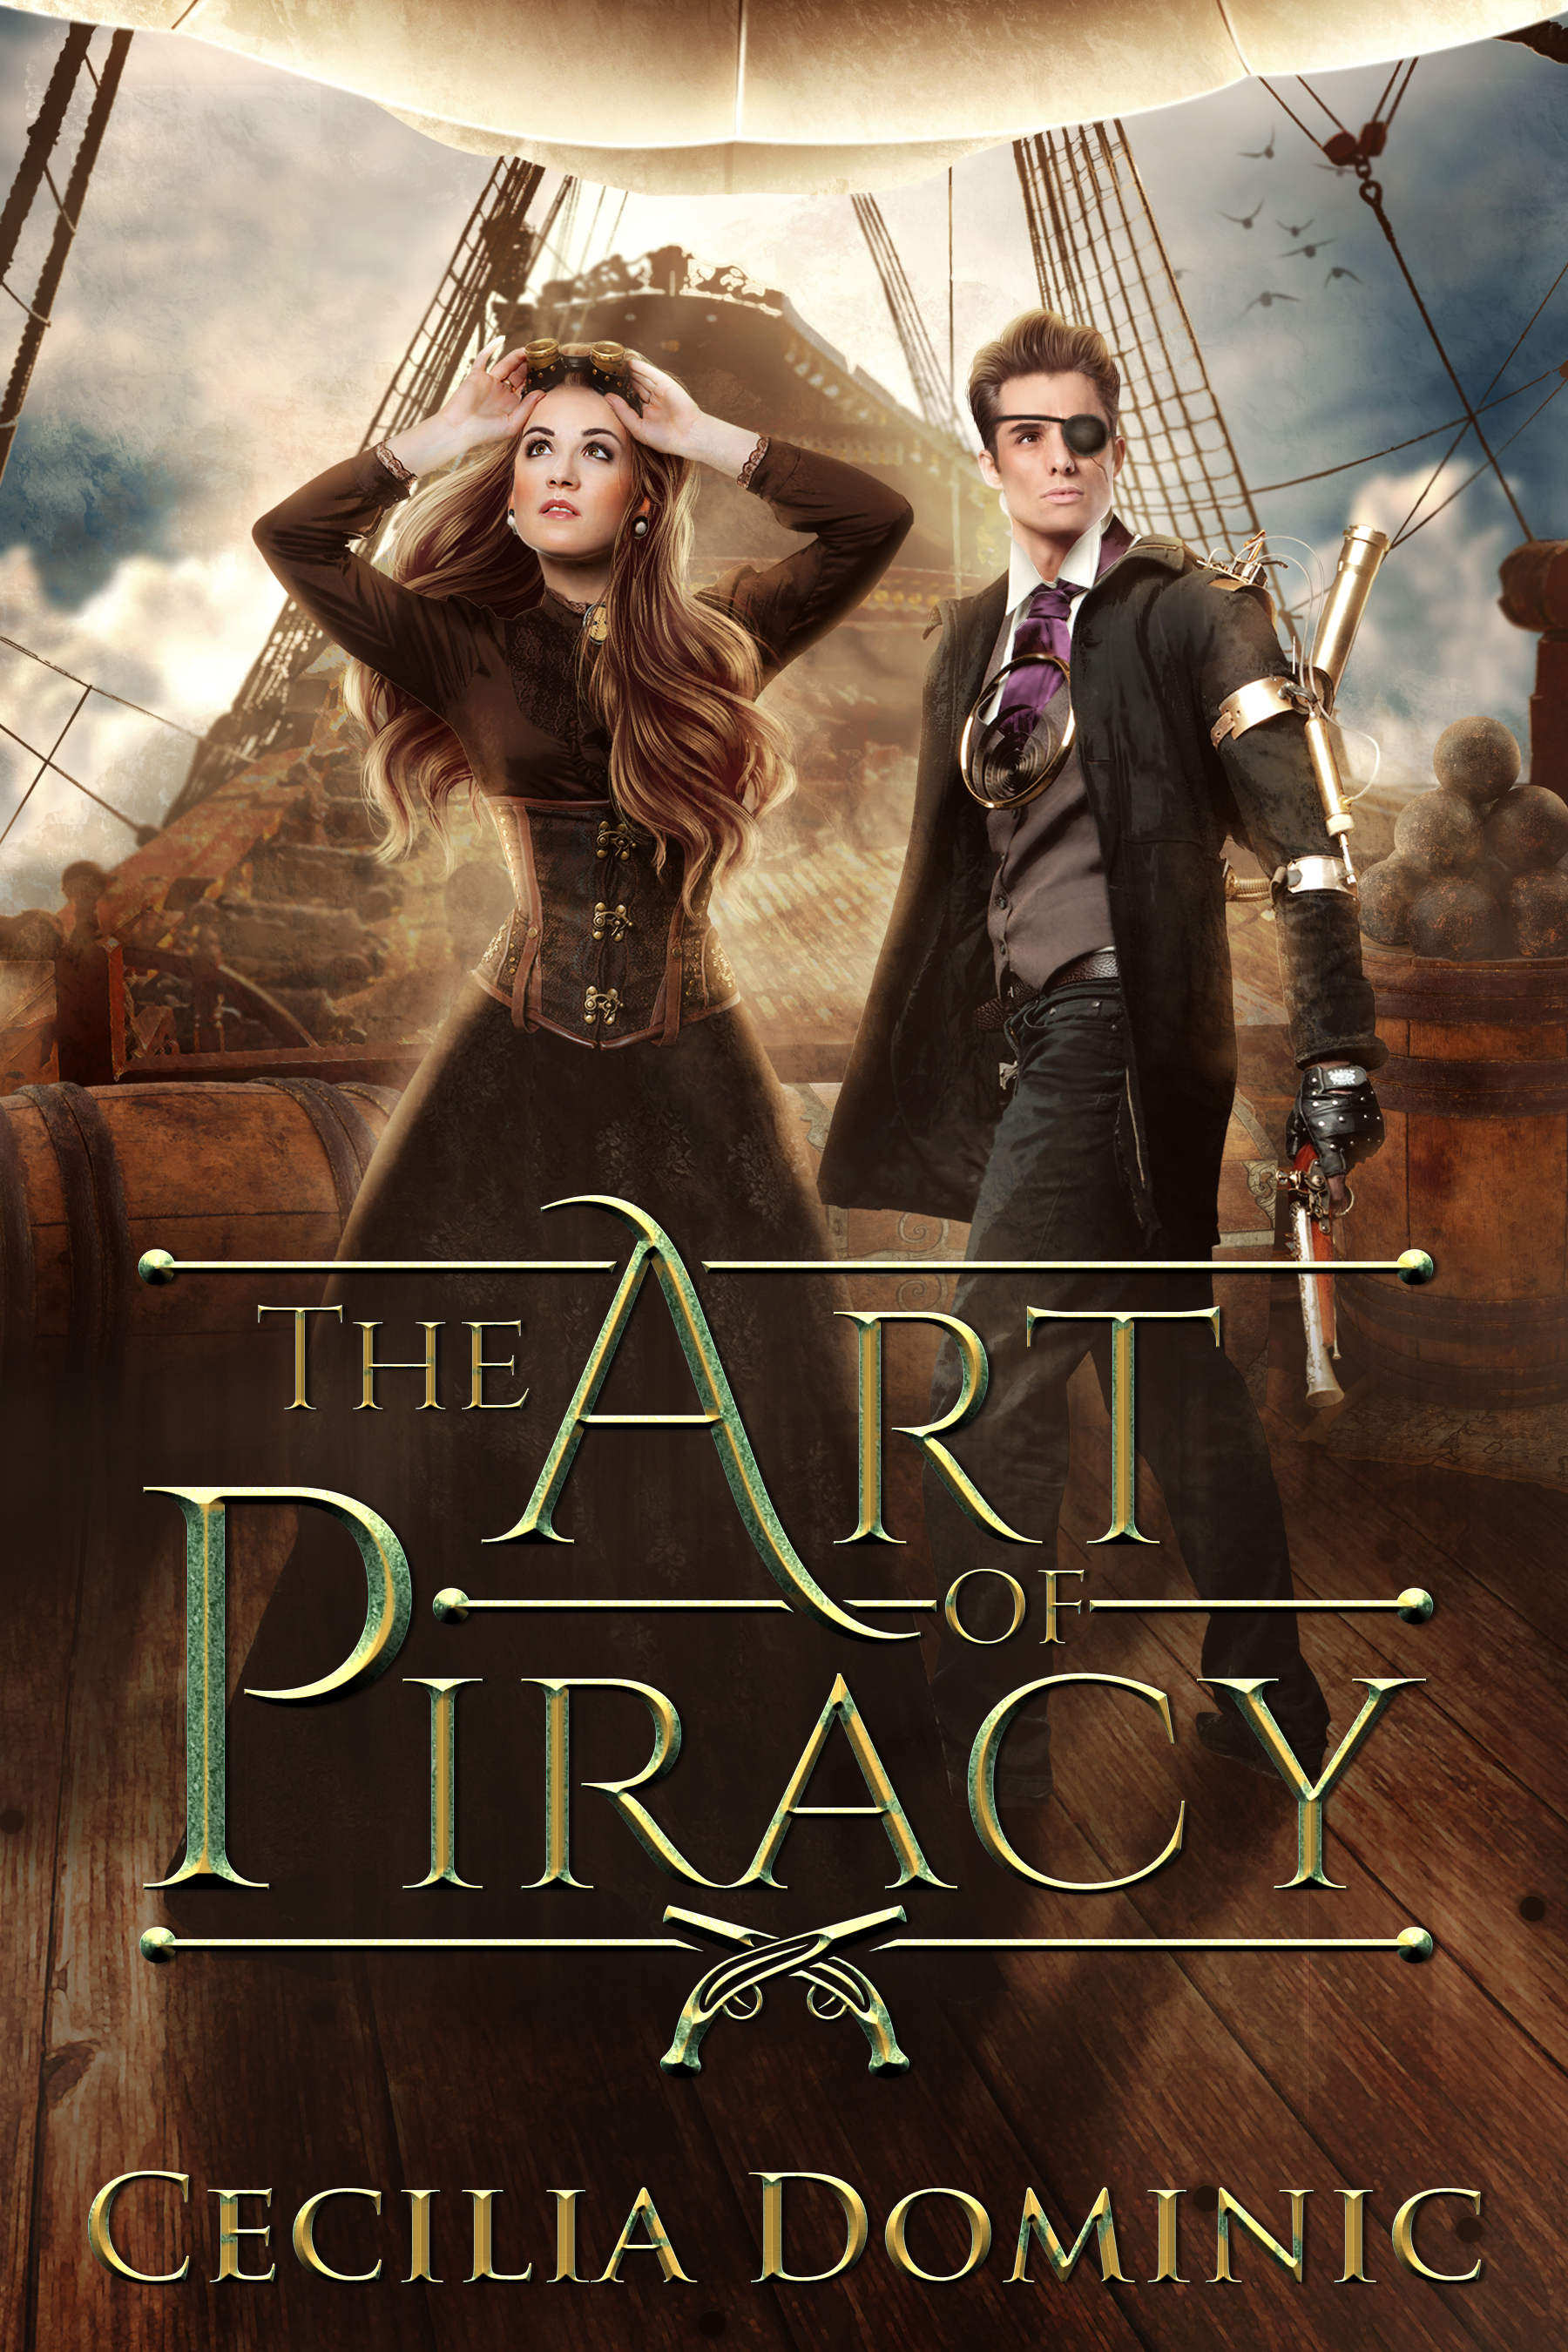 The Art of Piracy Cecilia Dominic